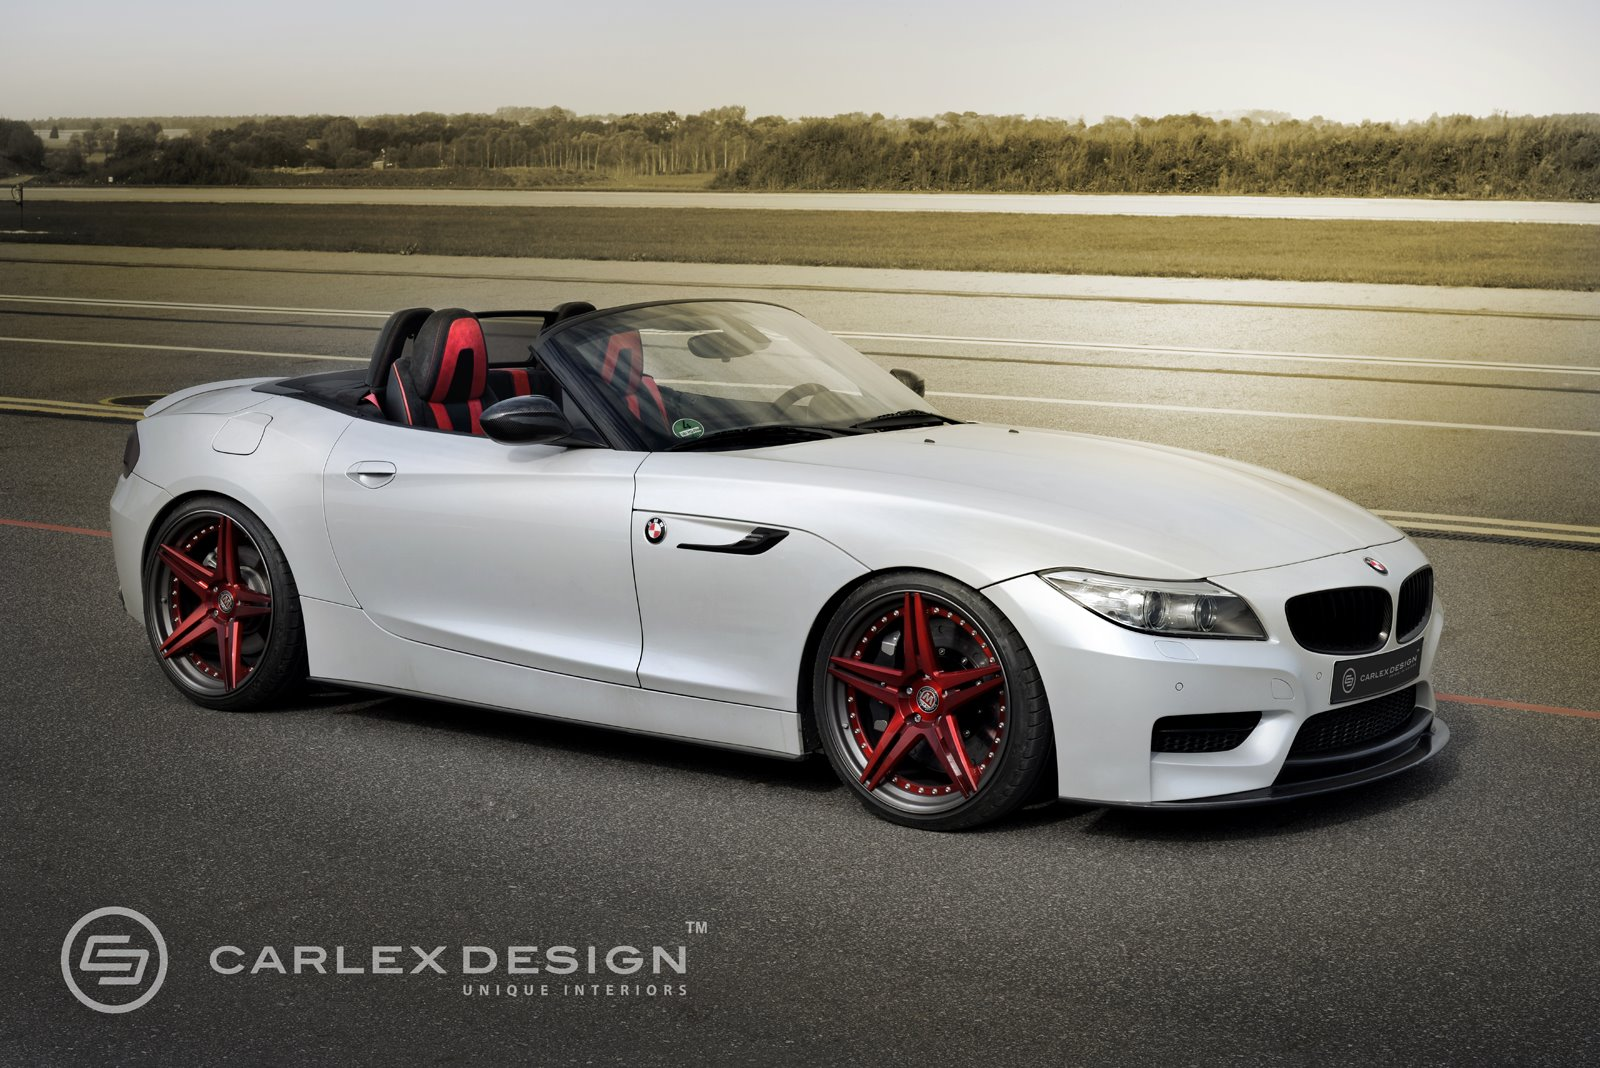 Bmw E89 Z4 Gets Carbon And Alcantara Treatment At Carlex Design Autoevolution